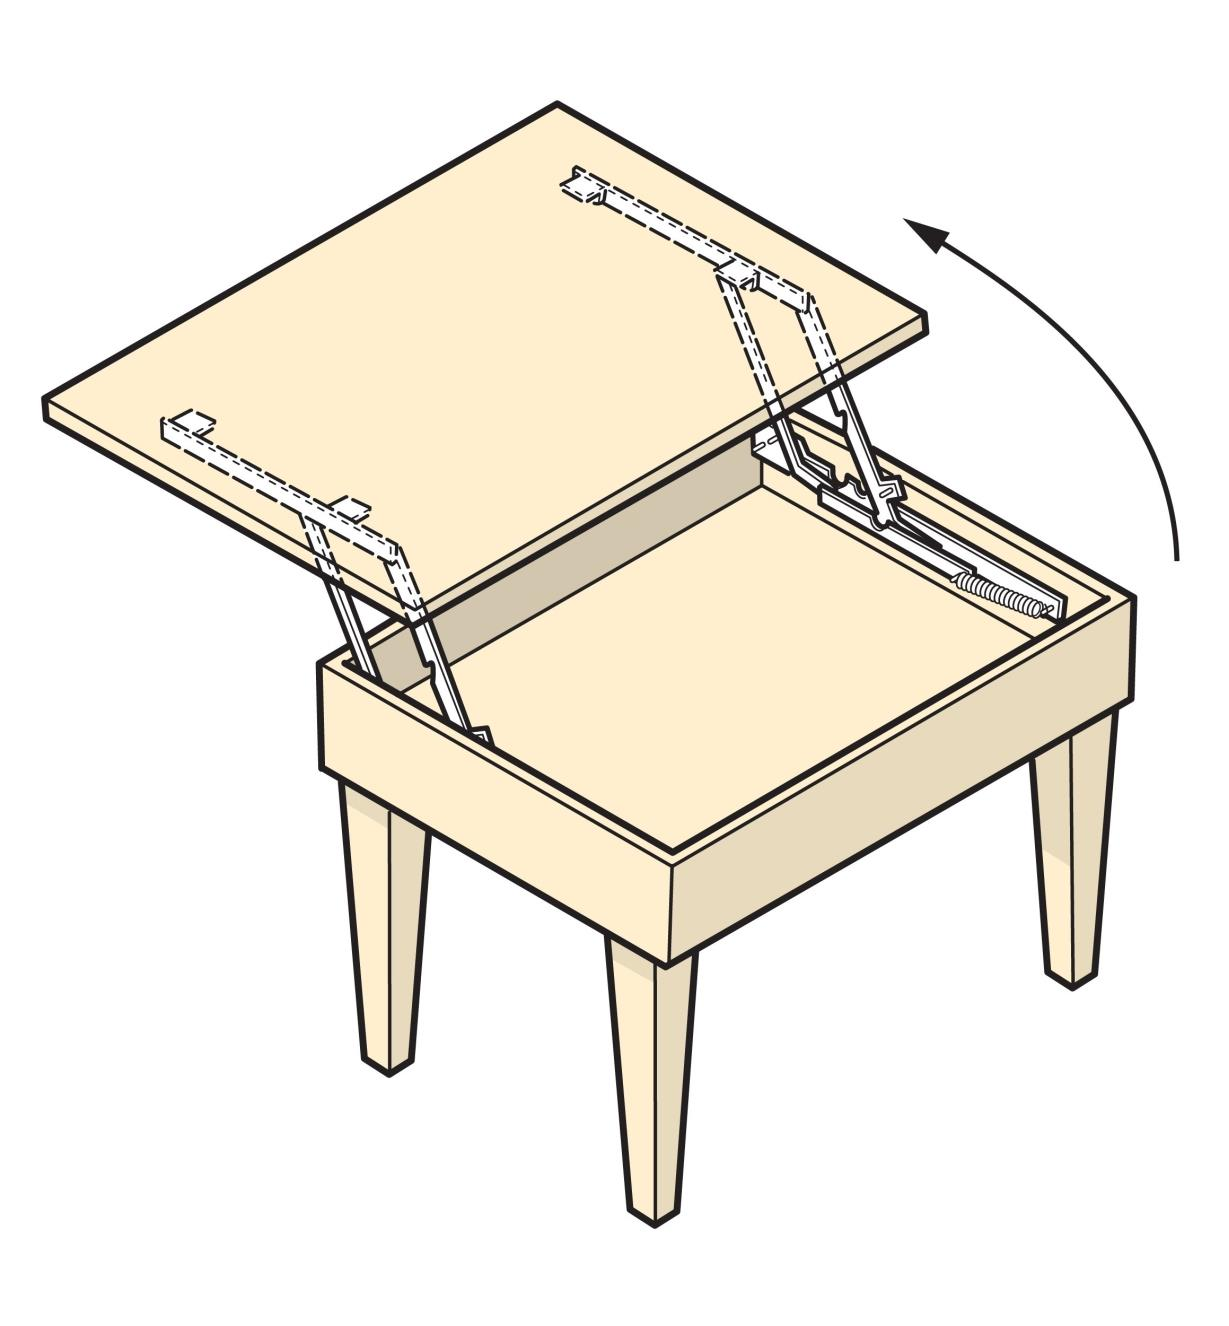 Illustration of a pop-up table made with Parallock brackets